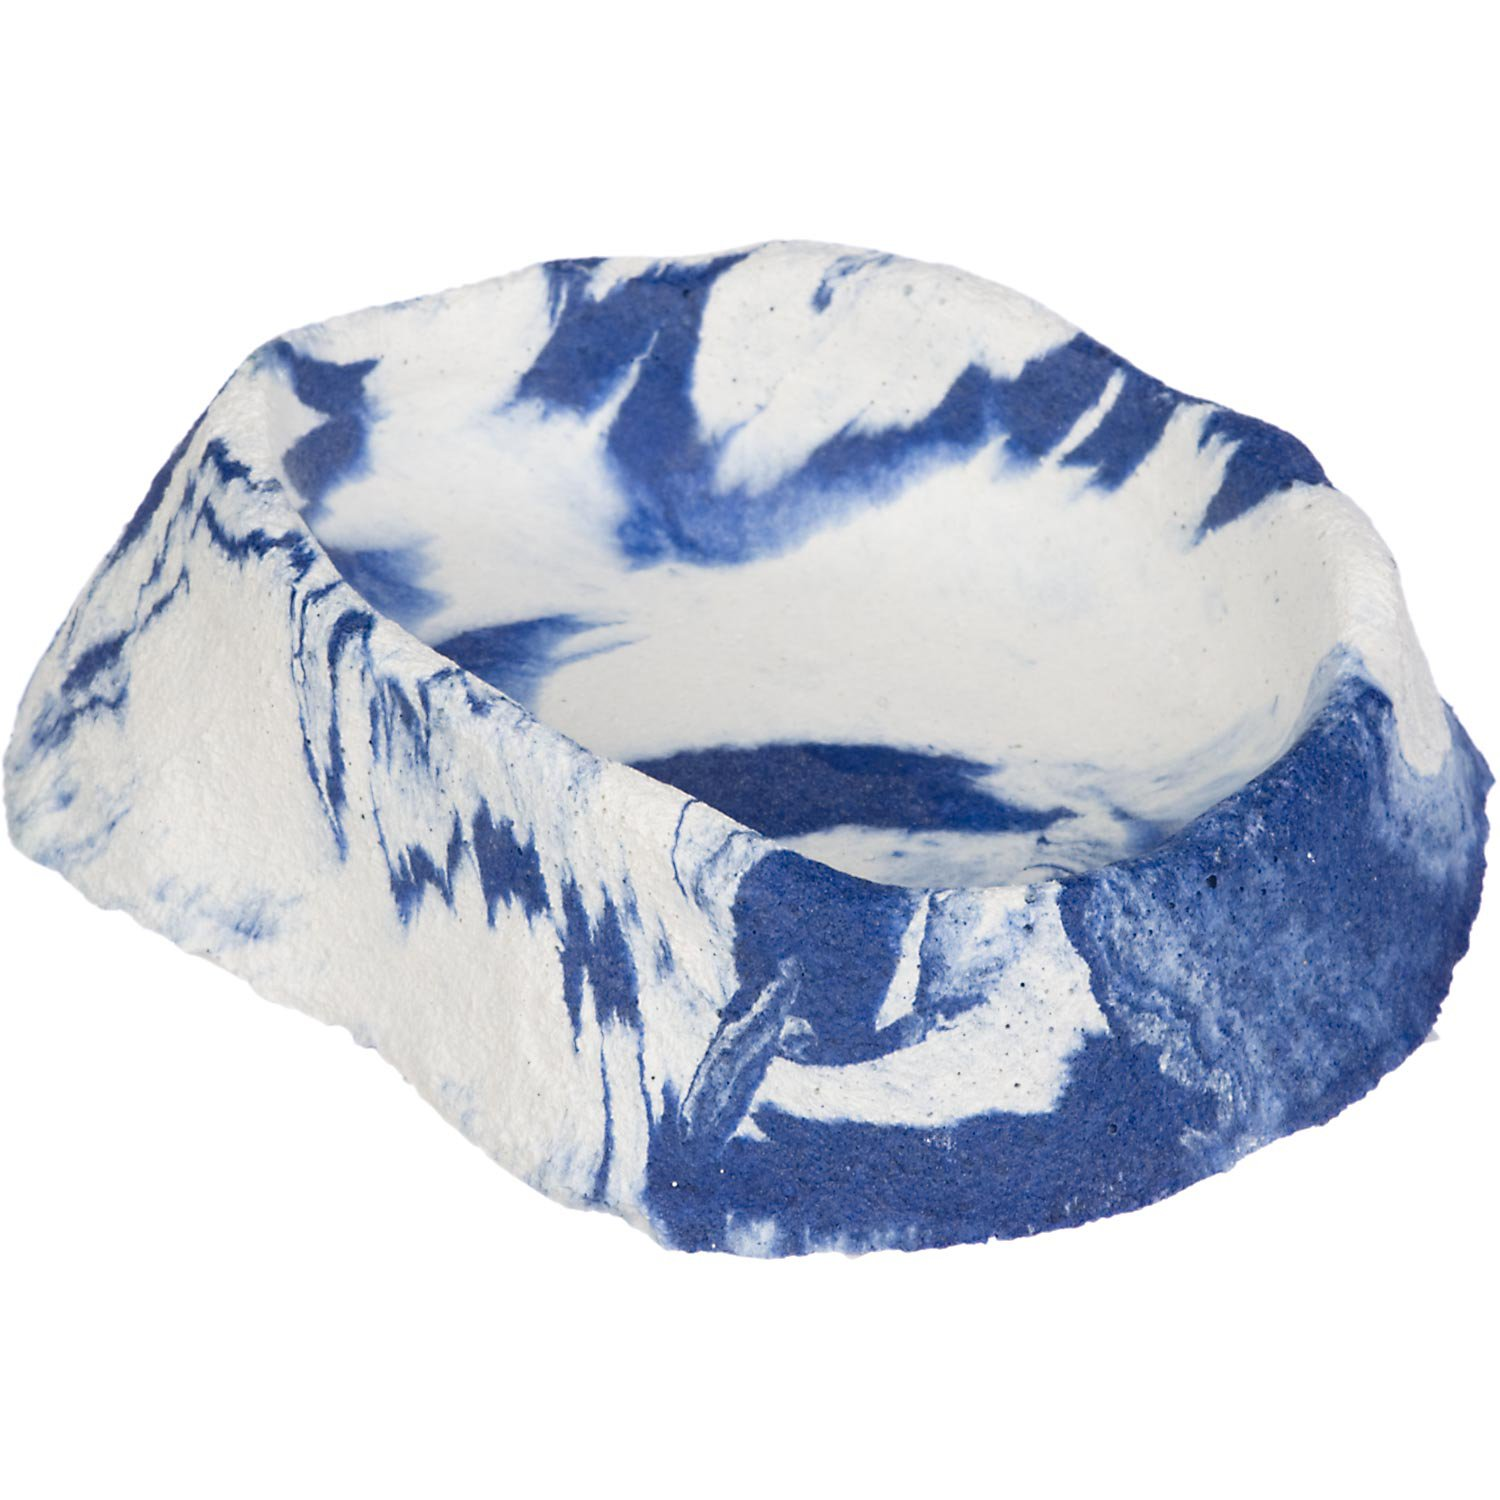 "Image of ""Conceptual Creations Glow Bowl Reptile Dish, 4.25"""" L X 3.5"""" W X 1.25"""" H, 4.25 IN, Blue"""